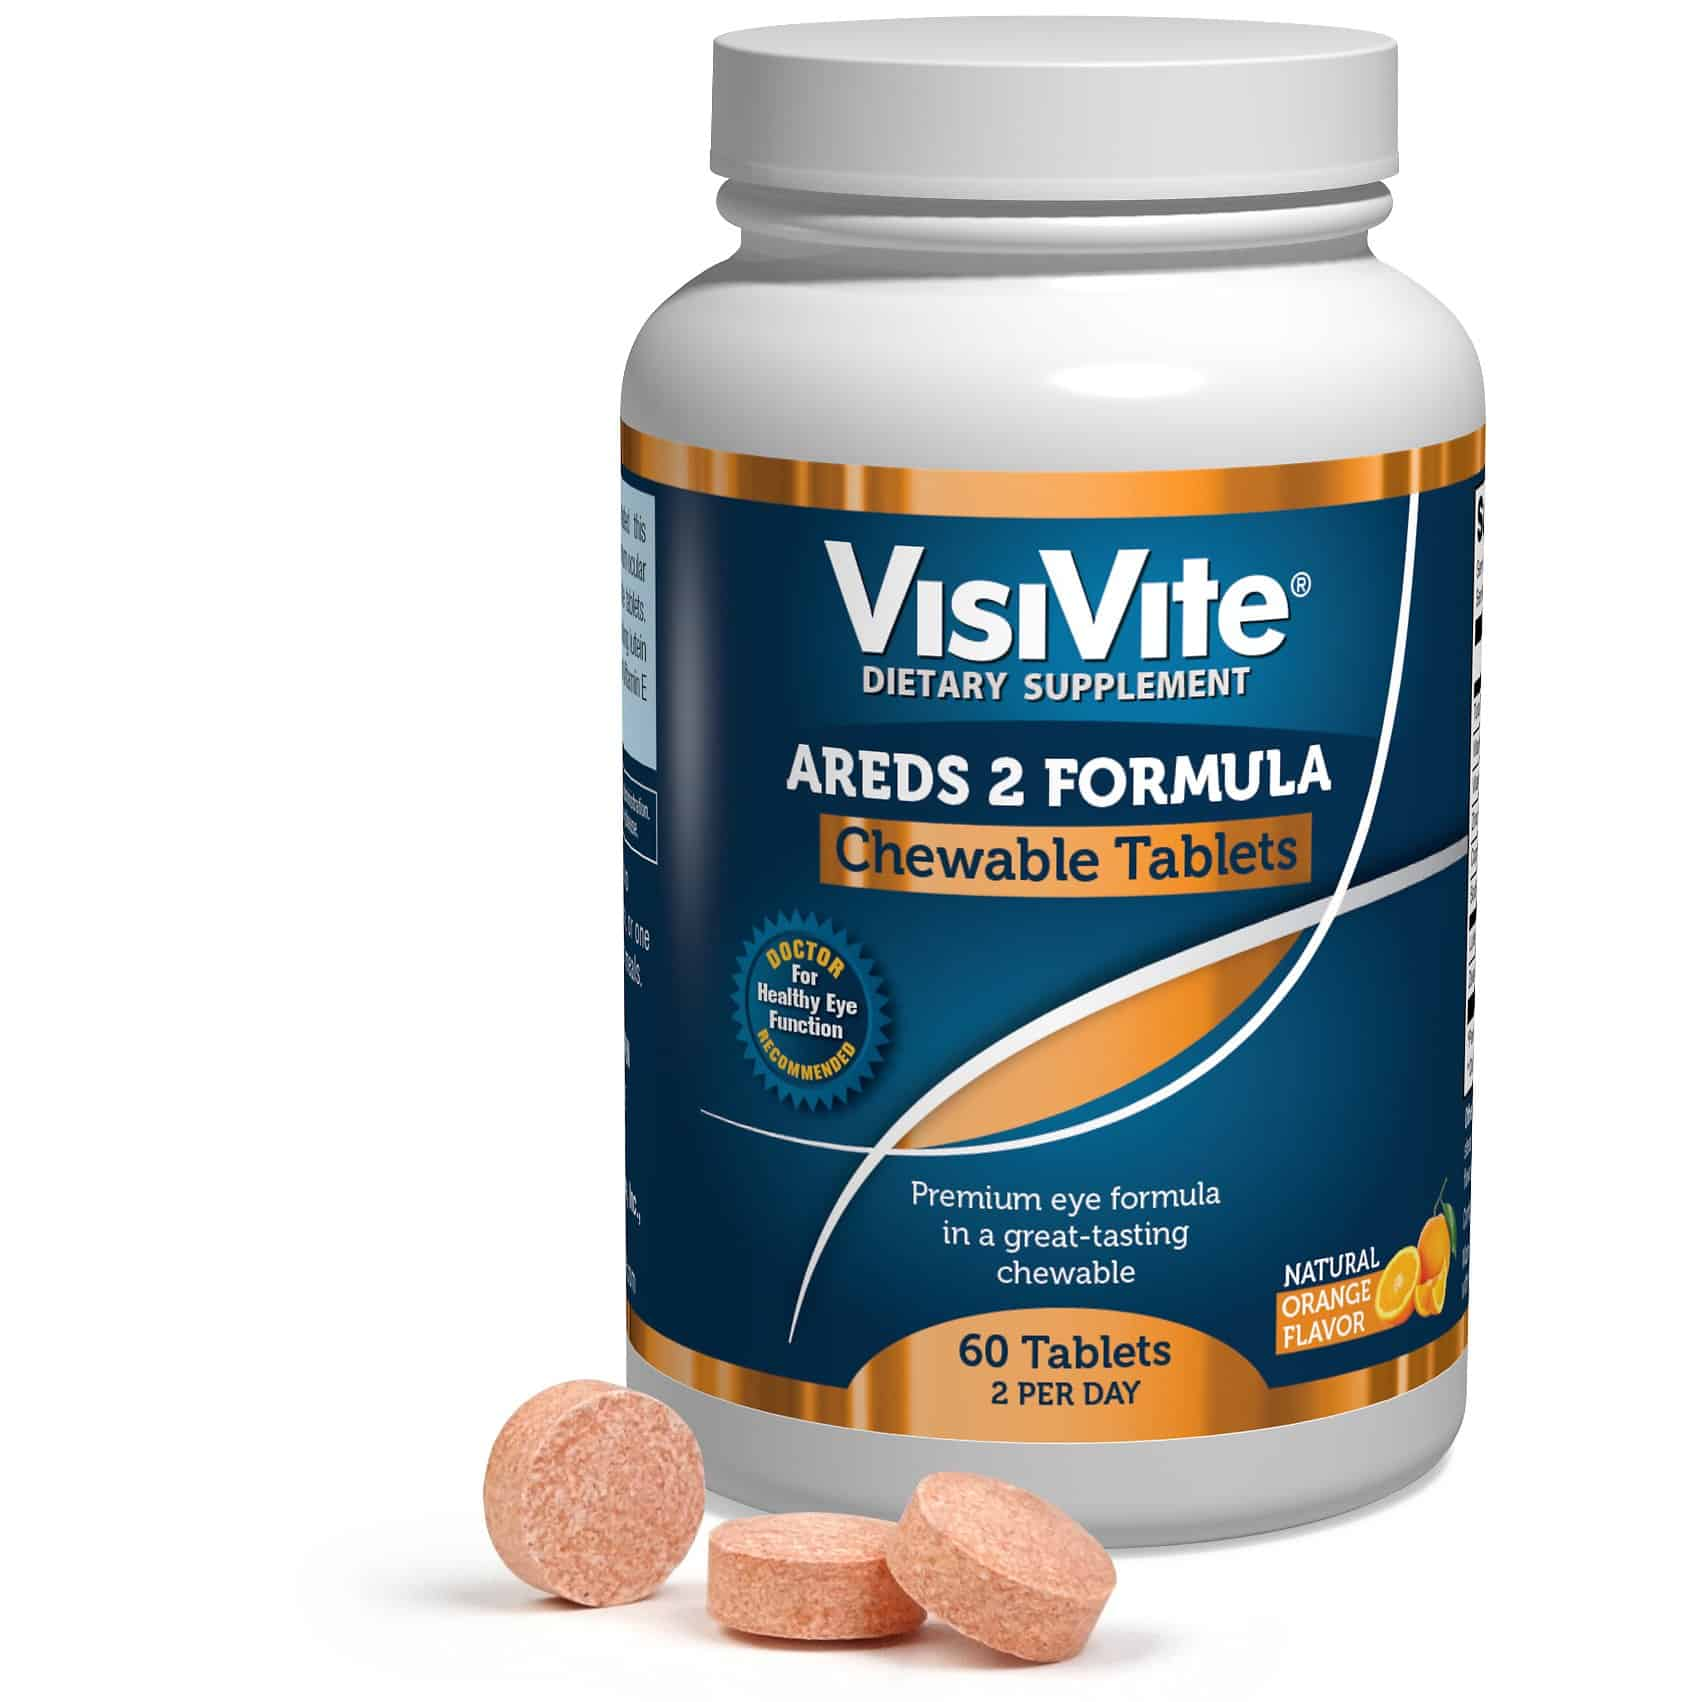 VisiVite AREDS 2 Chewable Tablets